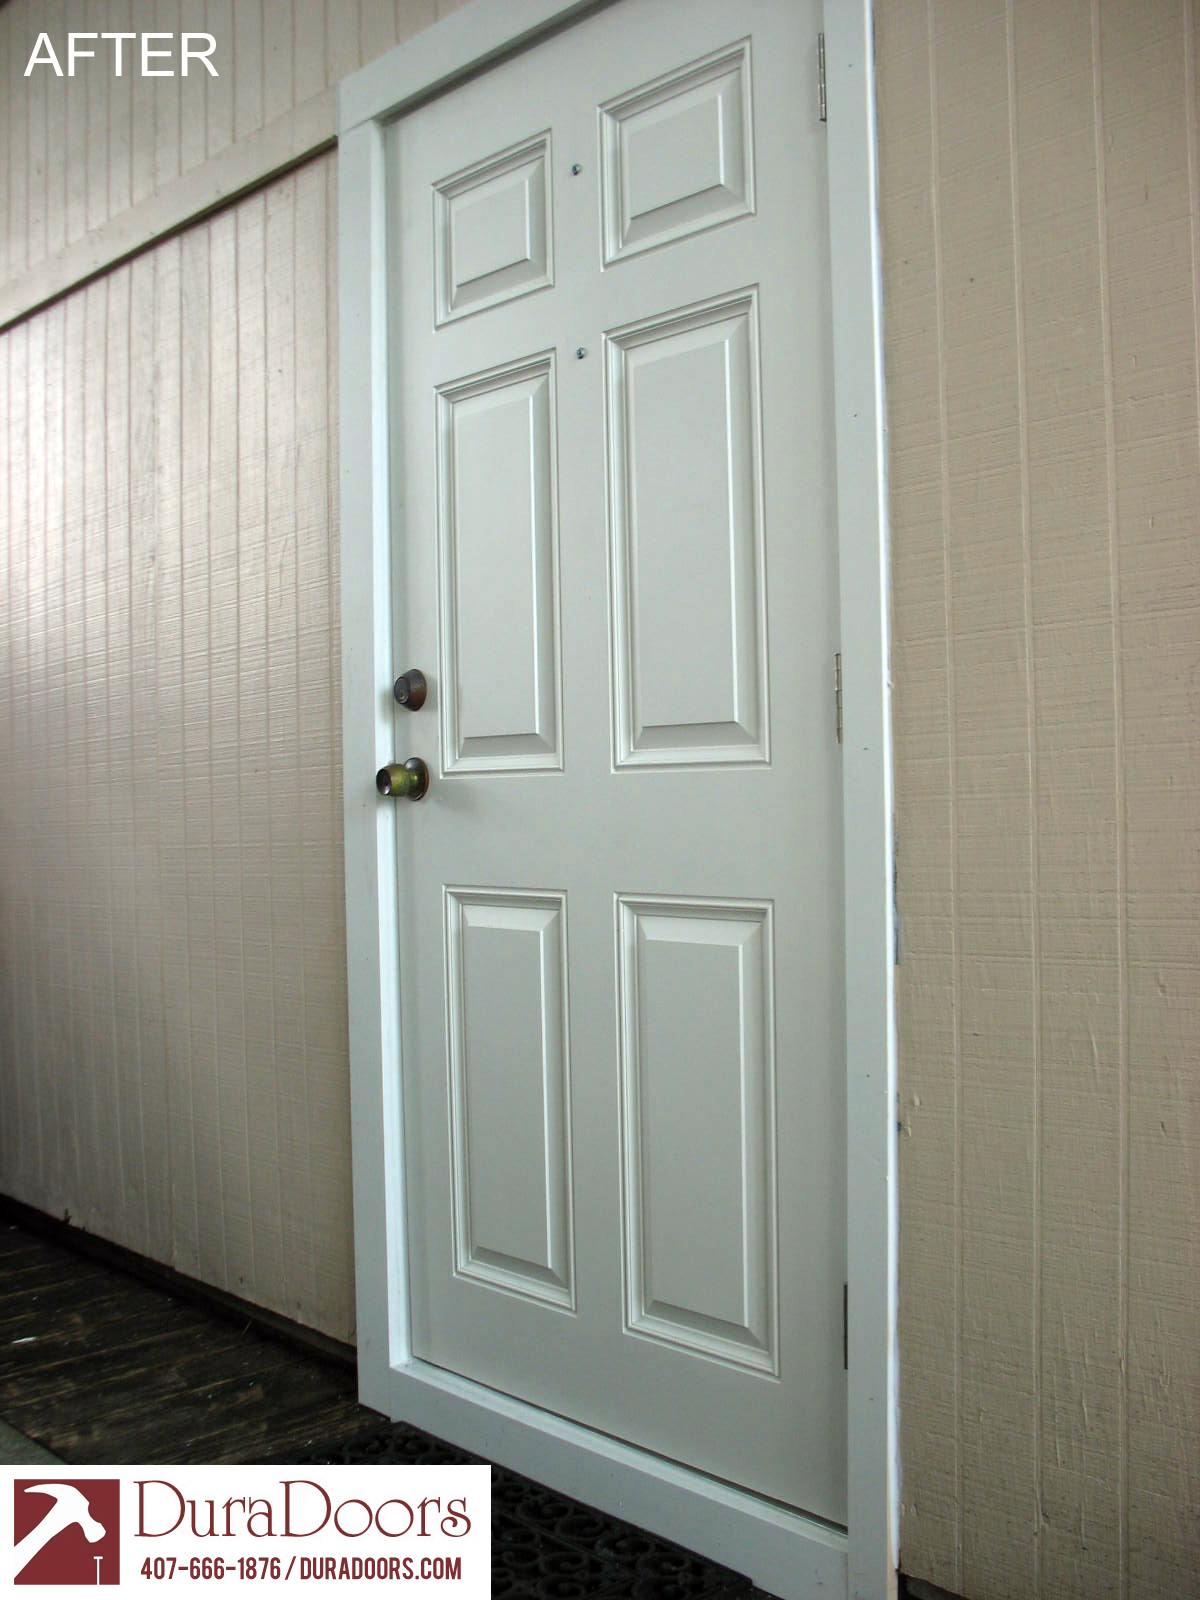 Plastpro 6 panel fiberglass door duradoors for Fiberglass entry doors